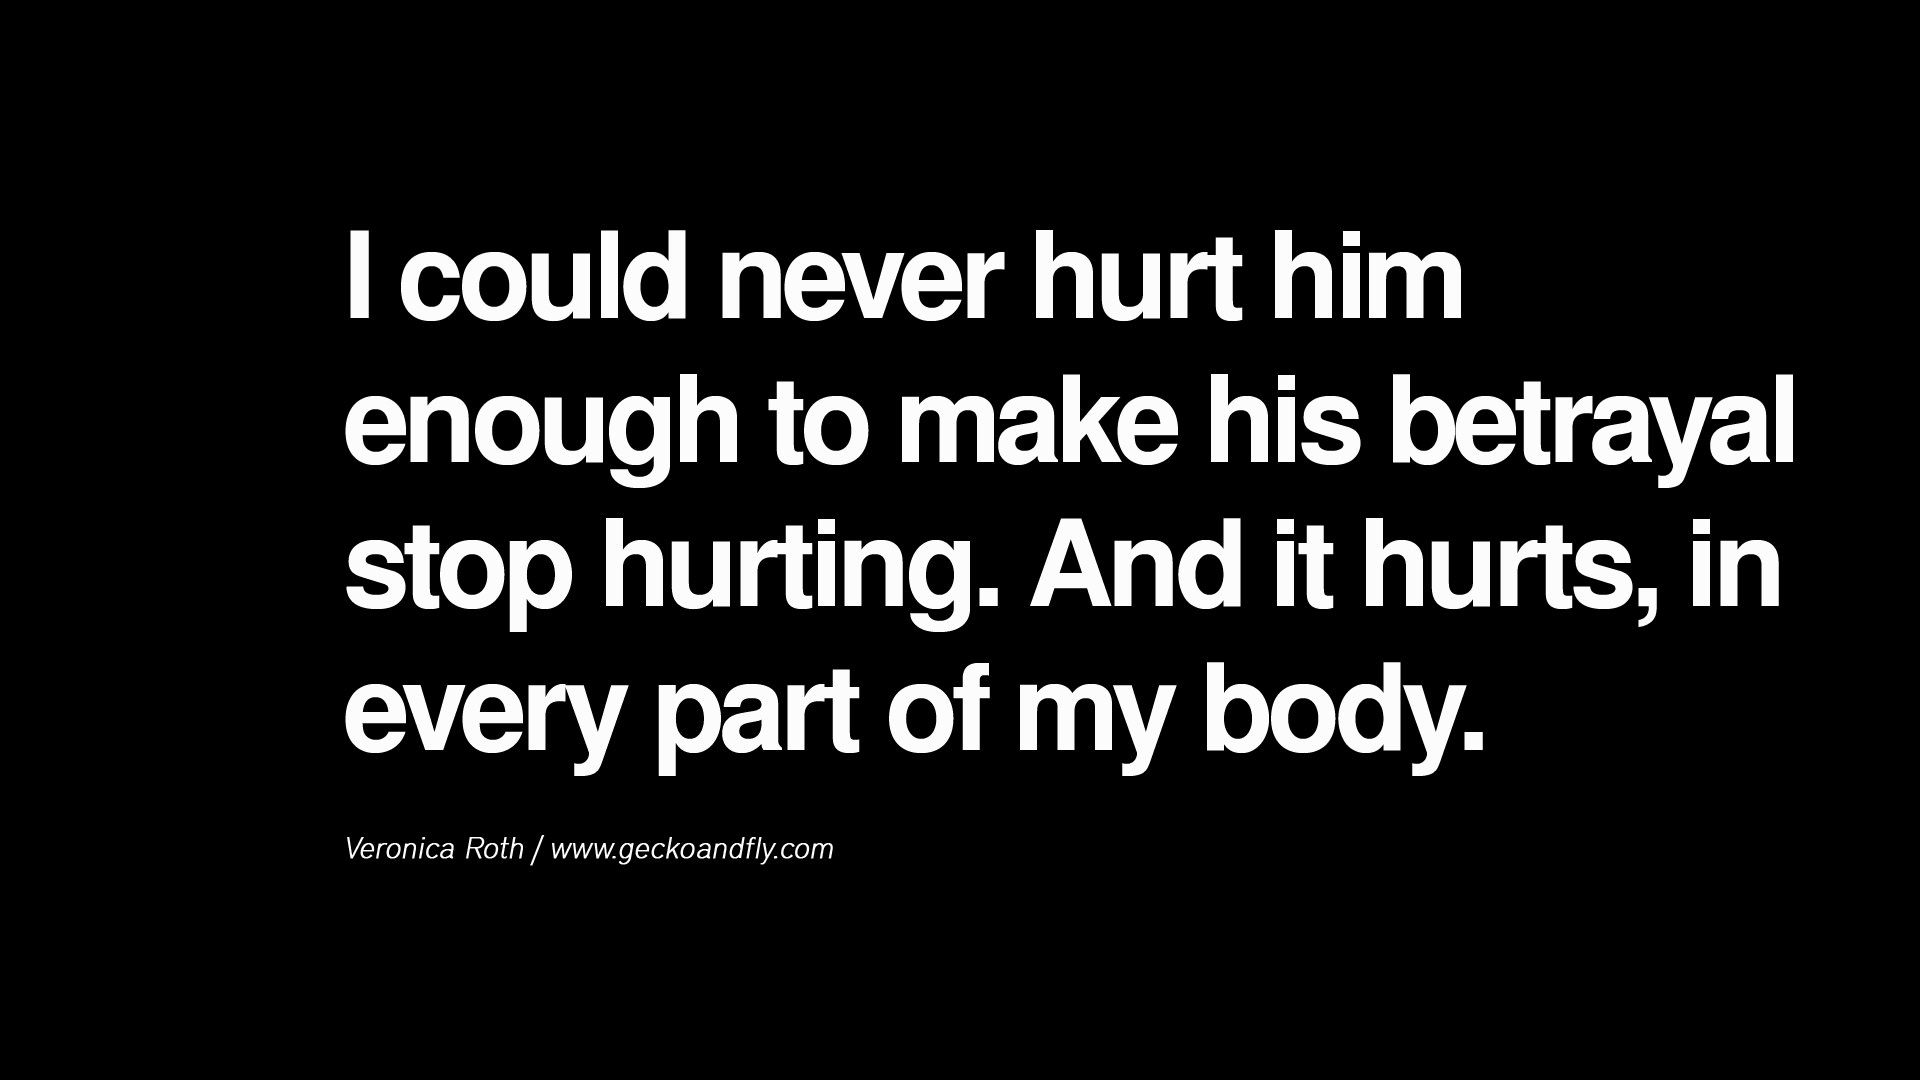 Quotes About Betrayal And Hurt. QuotesGram